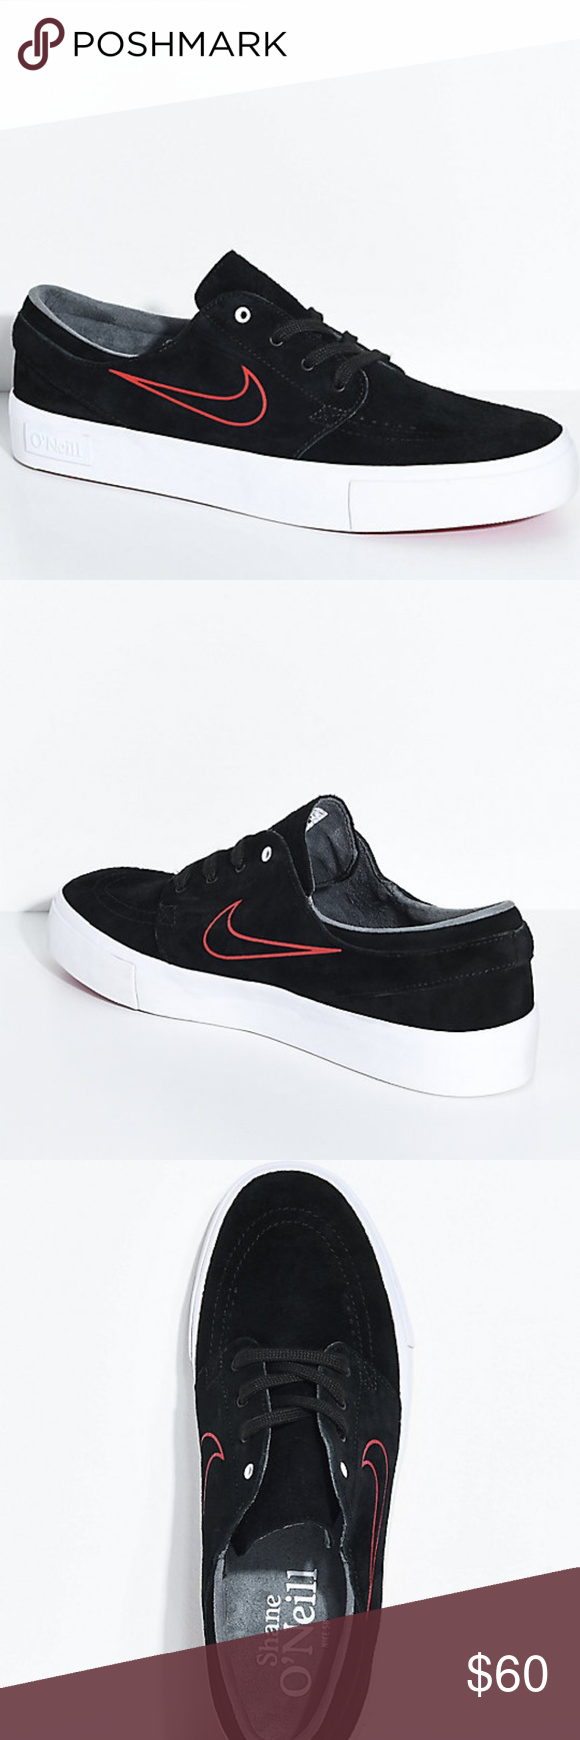 64fc8ba319c9 New Nike SB Janoski High Tape O Neill Black Shoes Graced with the gift of